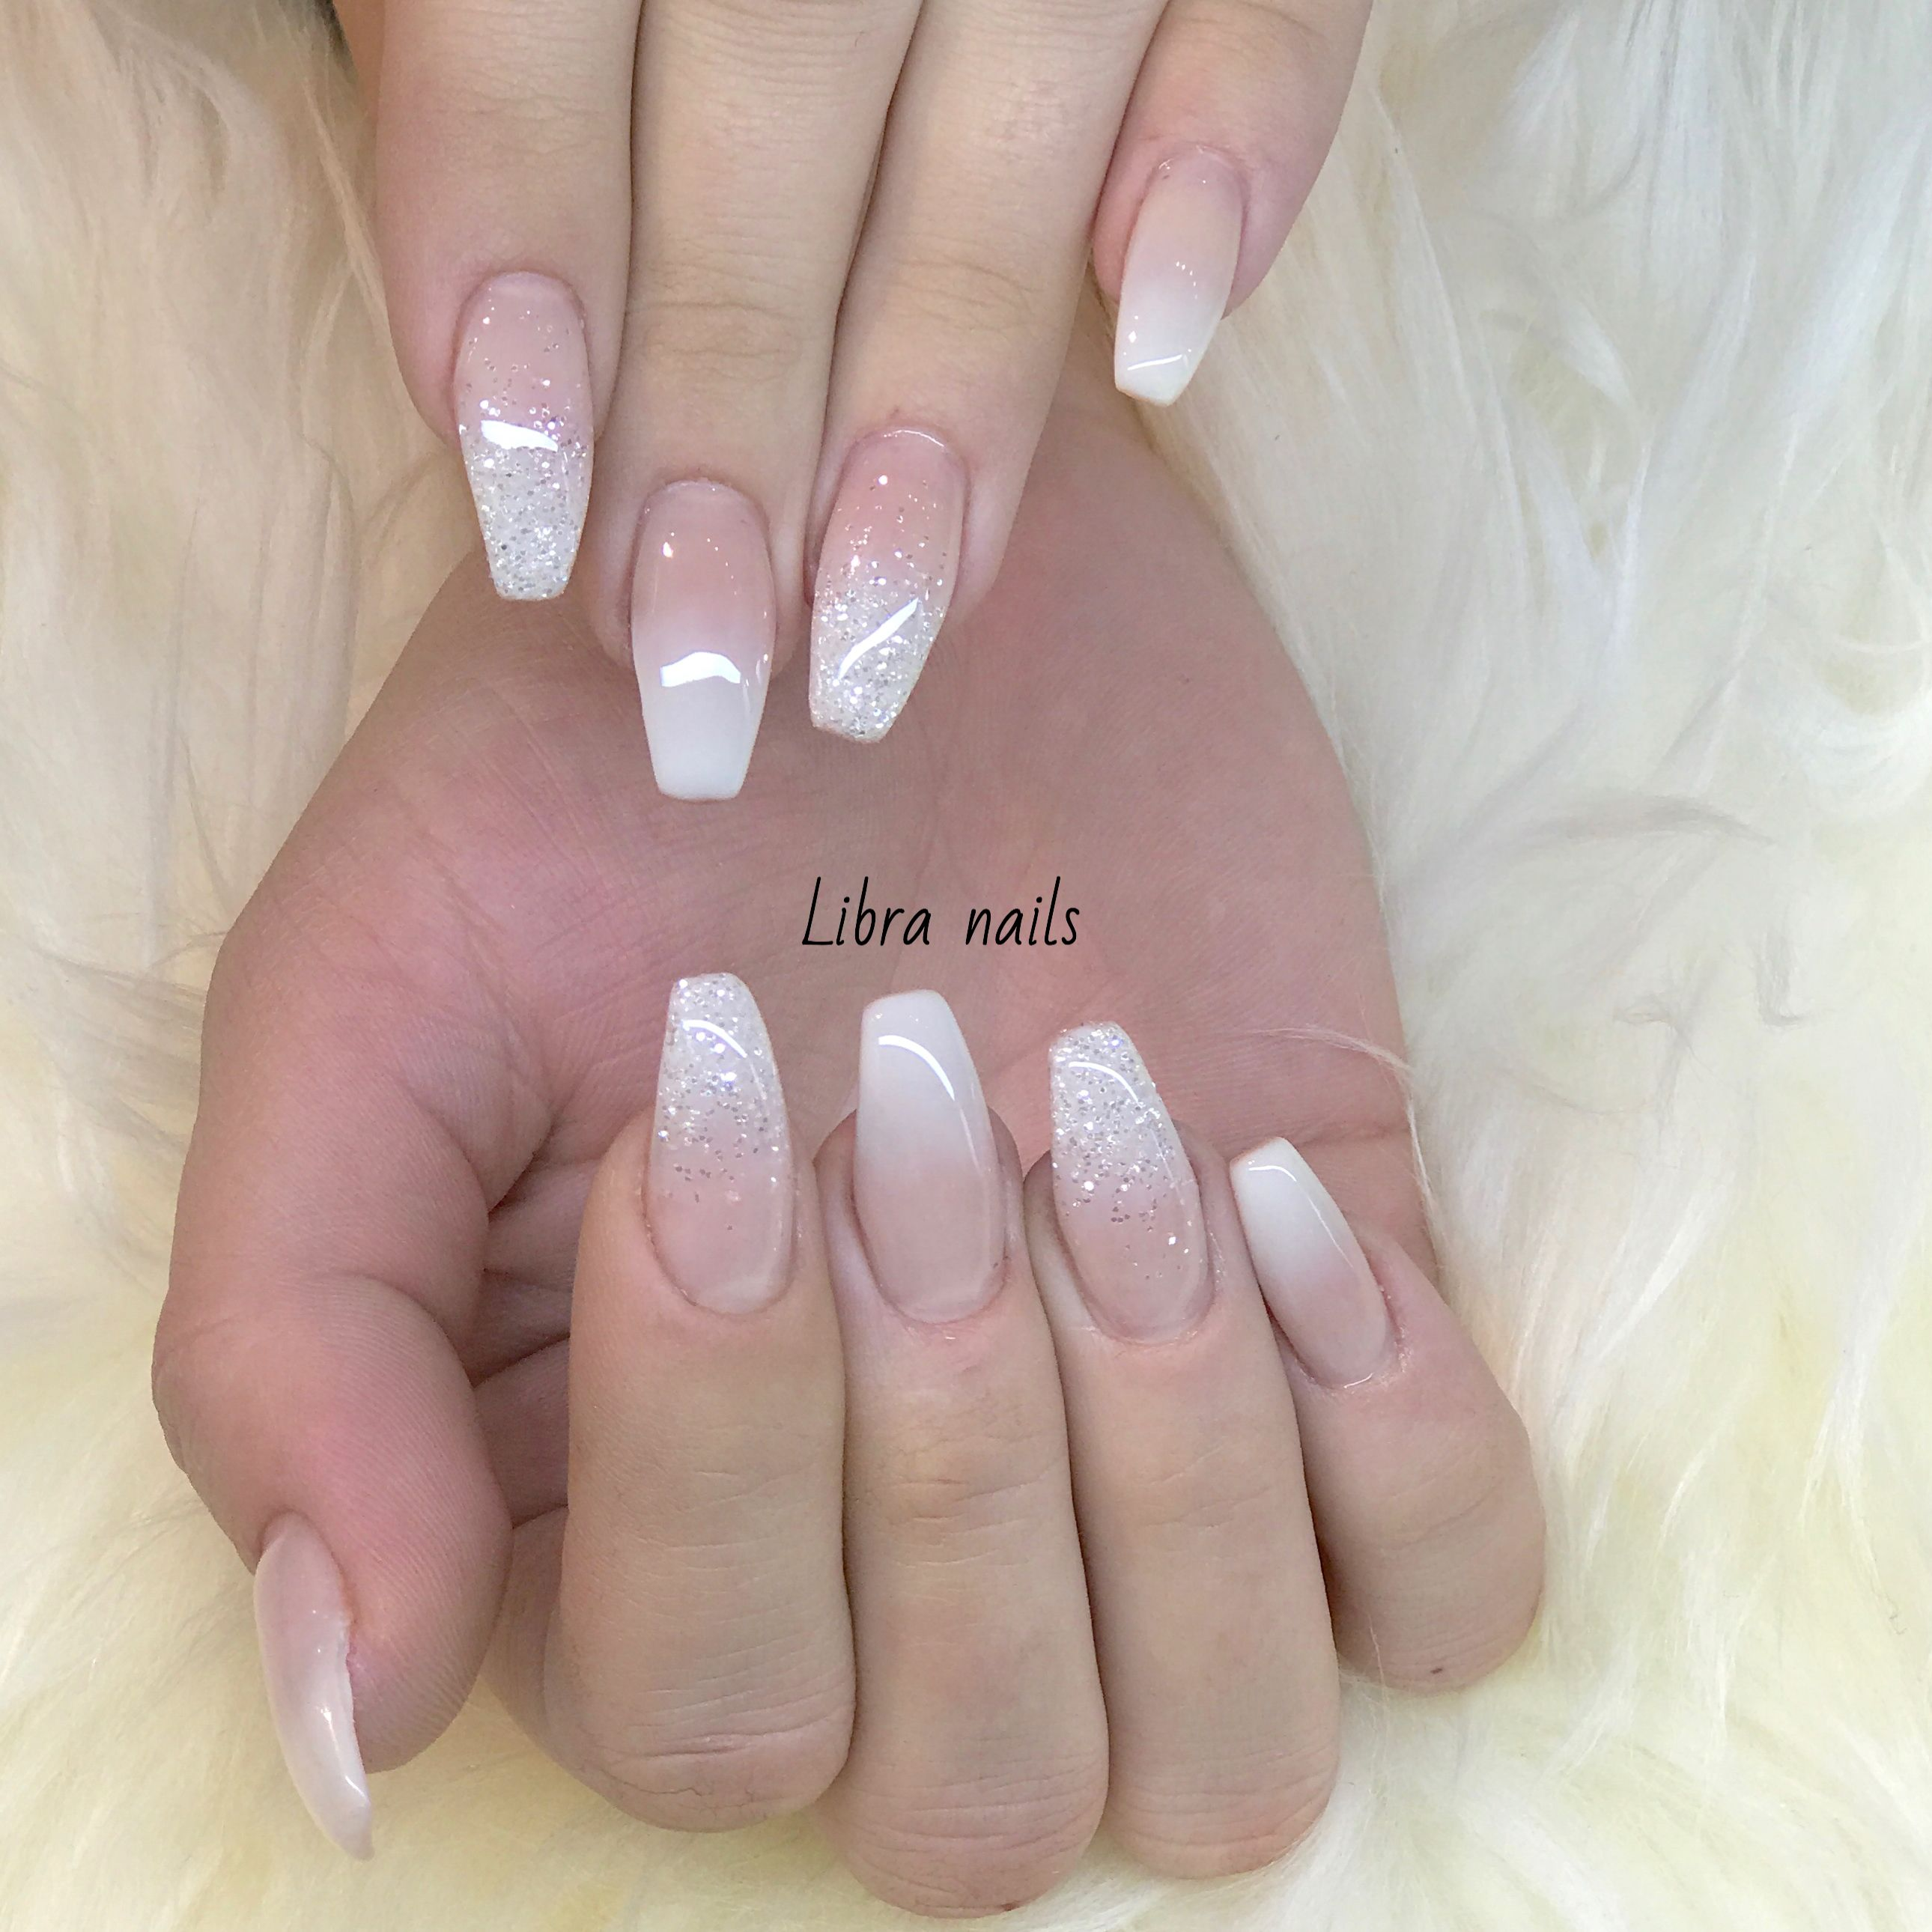 Pin by Whitney Sims on Nails | Pinterest | French nail polish ...